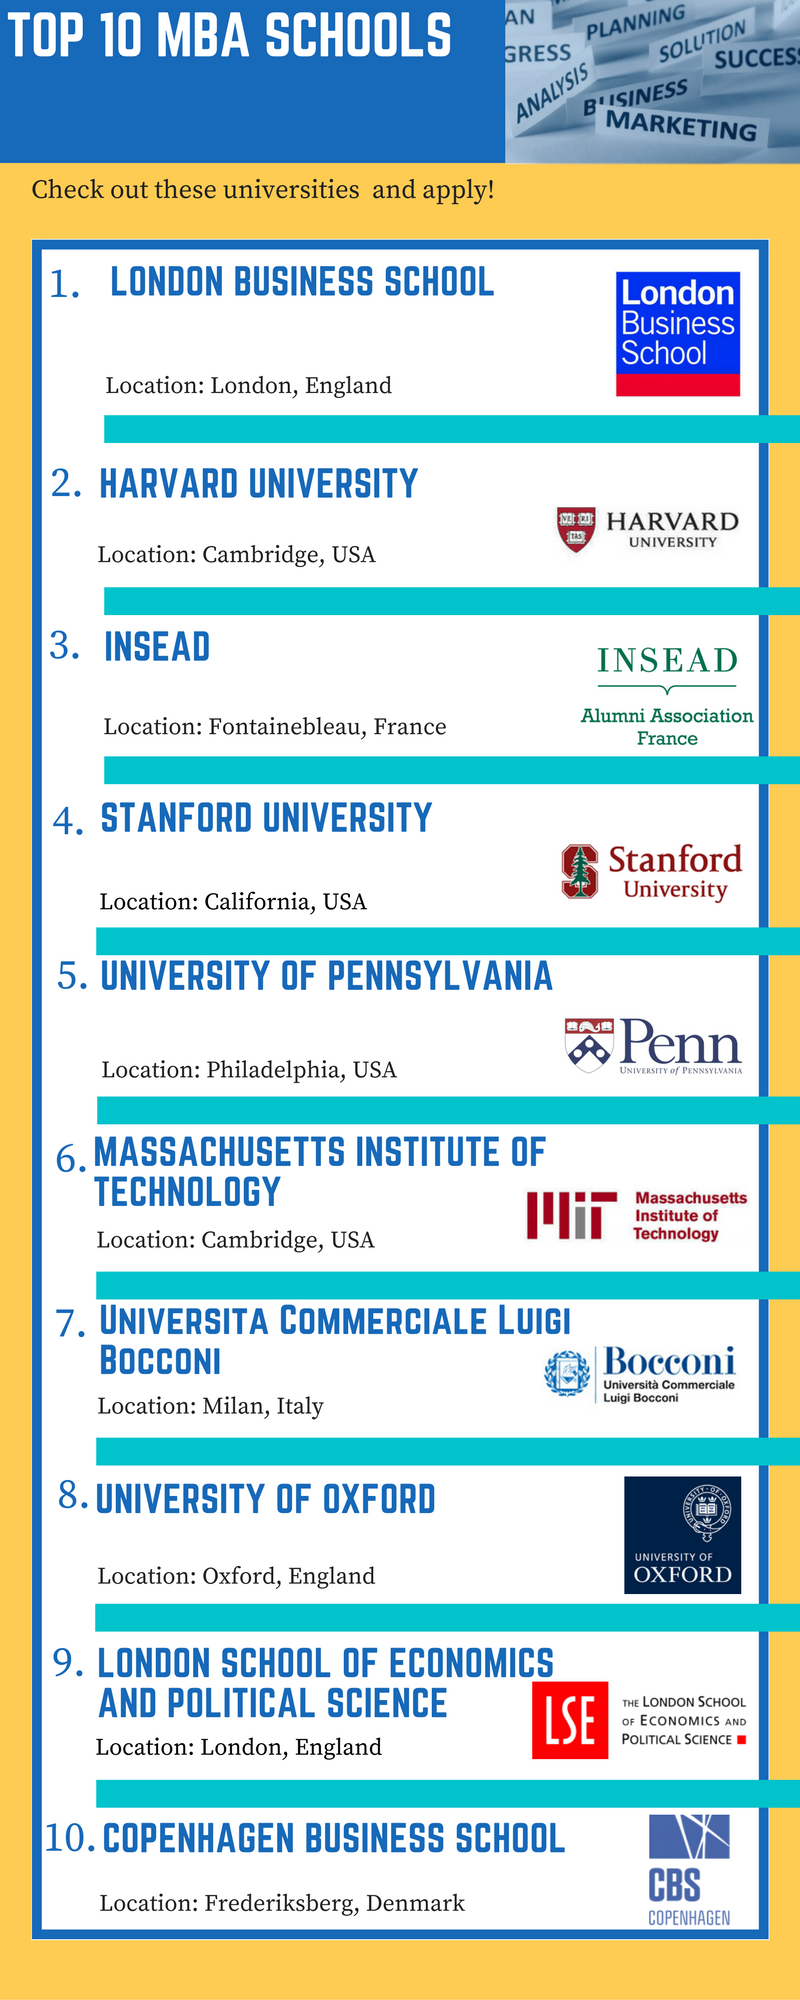 study mba best universities for mba top 10 mba schools